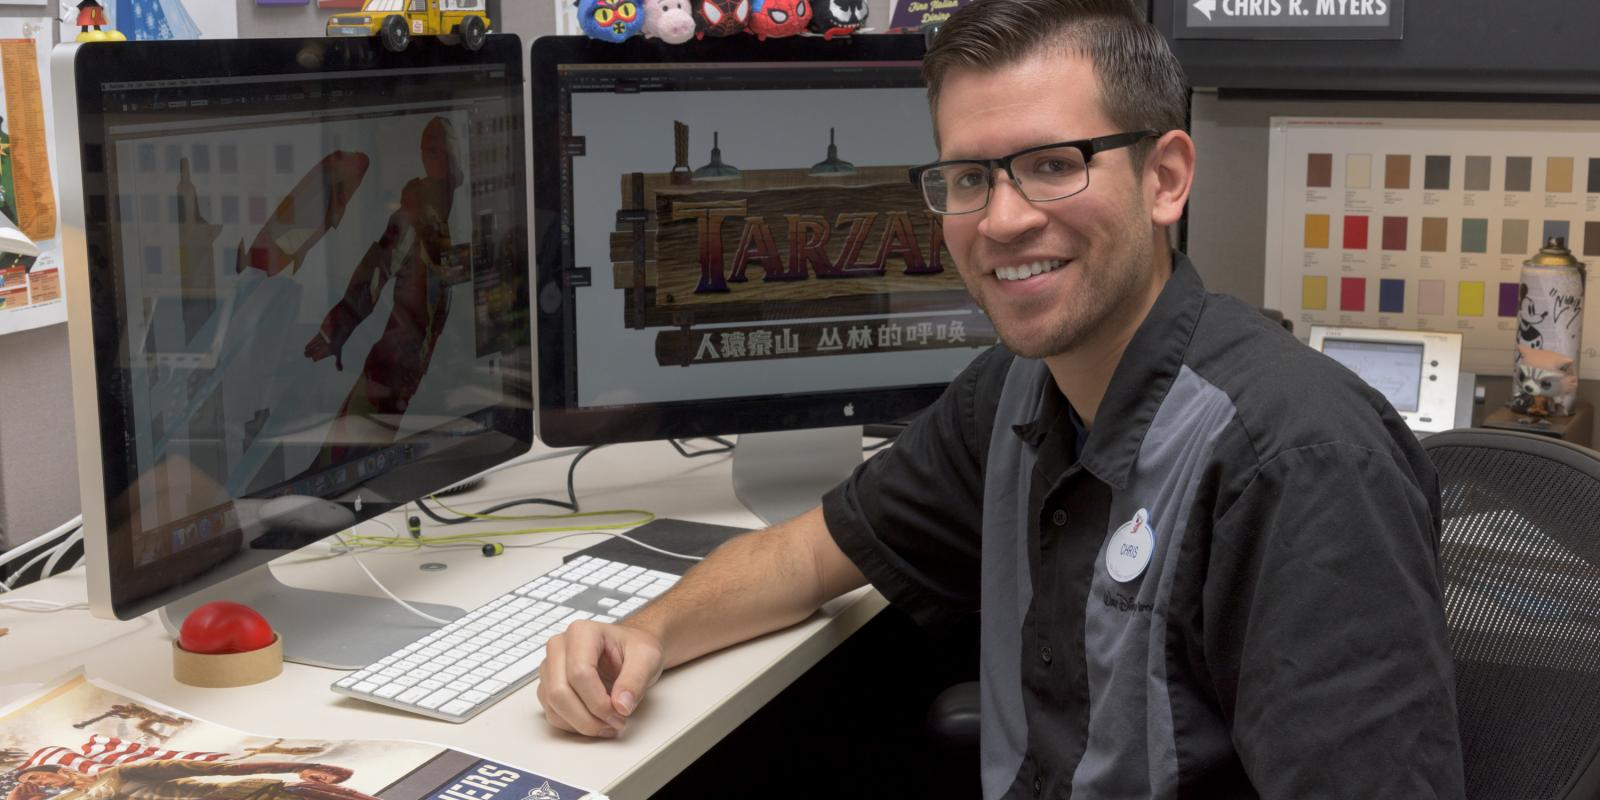 Chris Myers secured full-time employment with Walt Disney Imagineering after his internship (Image courtesy of Walt Disney Imagineering)